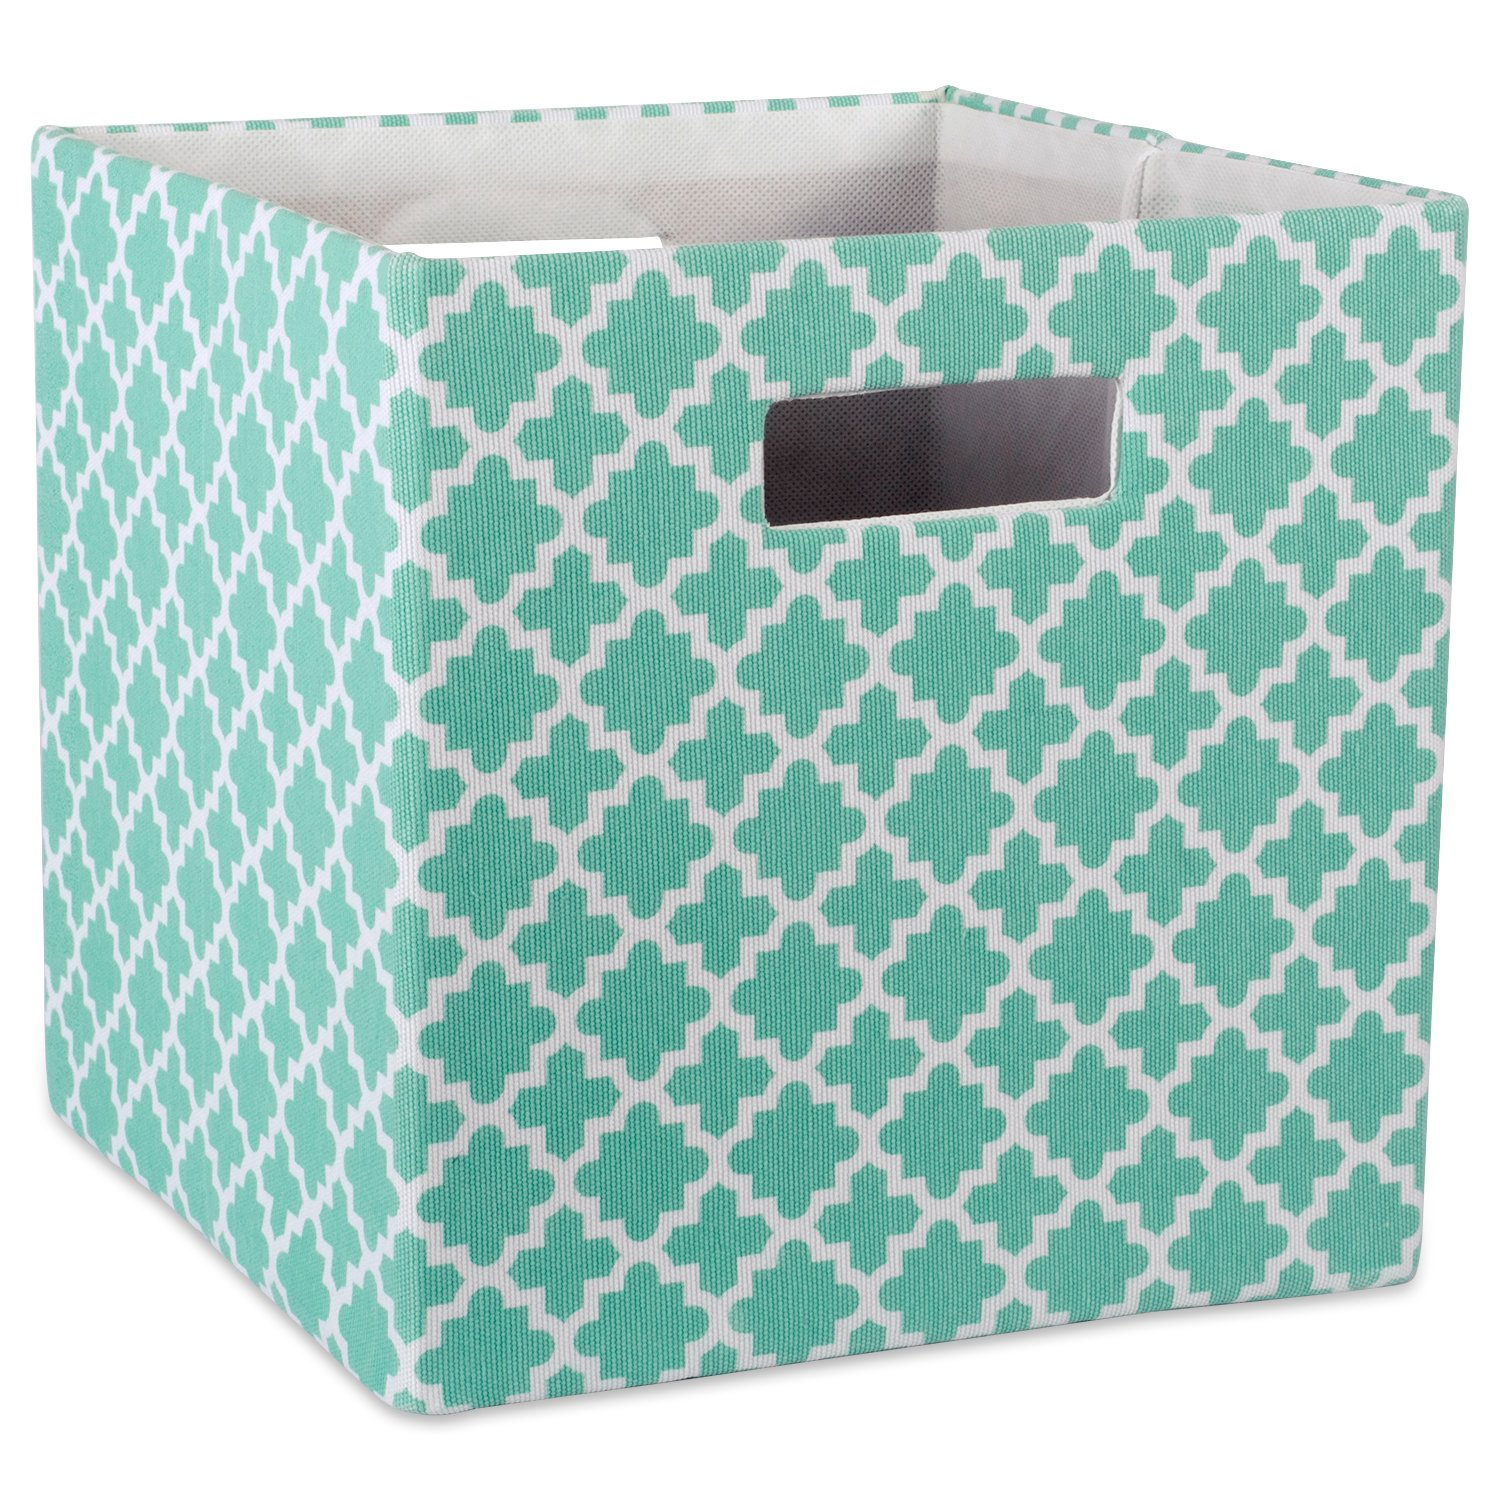 Details About DII Hard Sided Collapsible Fabric Storage Container For  Nursery, Offices, Home